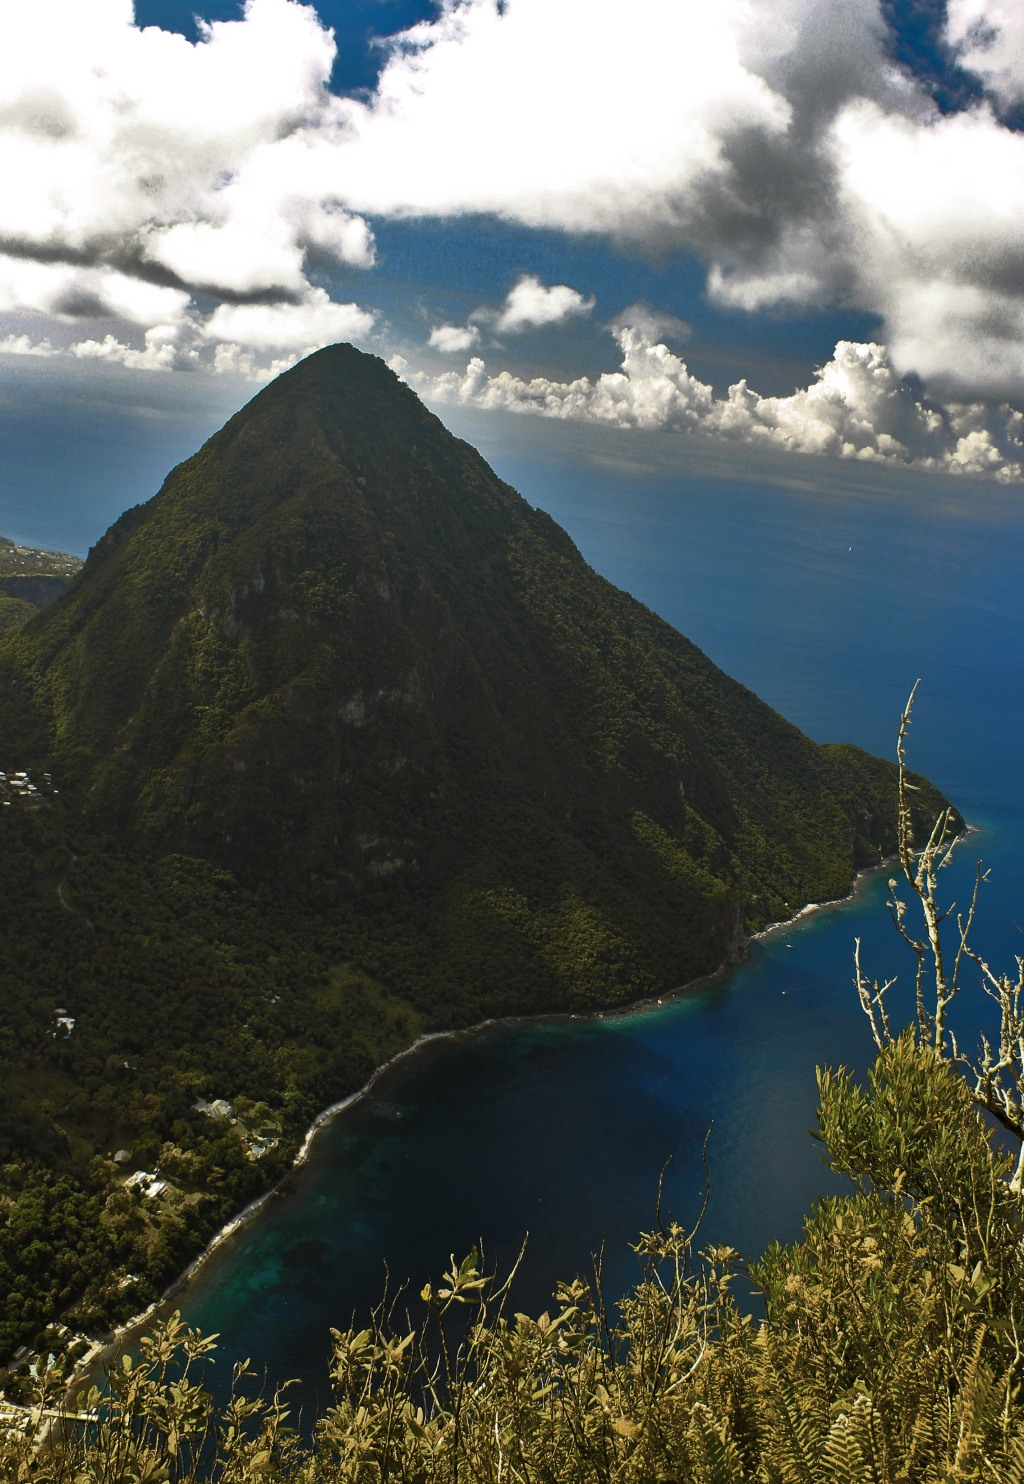 Day 4: AS SEEN FROM THE SUMMIT OF PETIT PITON (! cap-locked for excited emphasis!) Canon 18mm, f/8, 1/50, ISO 100. Color Correction done in Photoshop. (Lightroom currently in transit!)